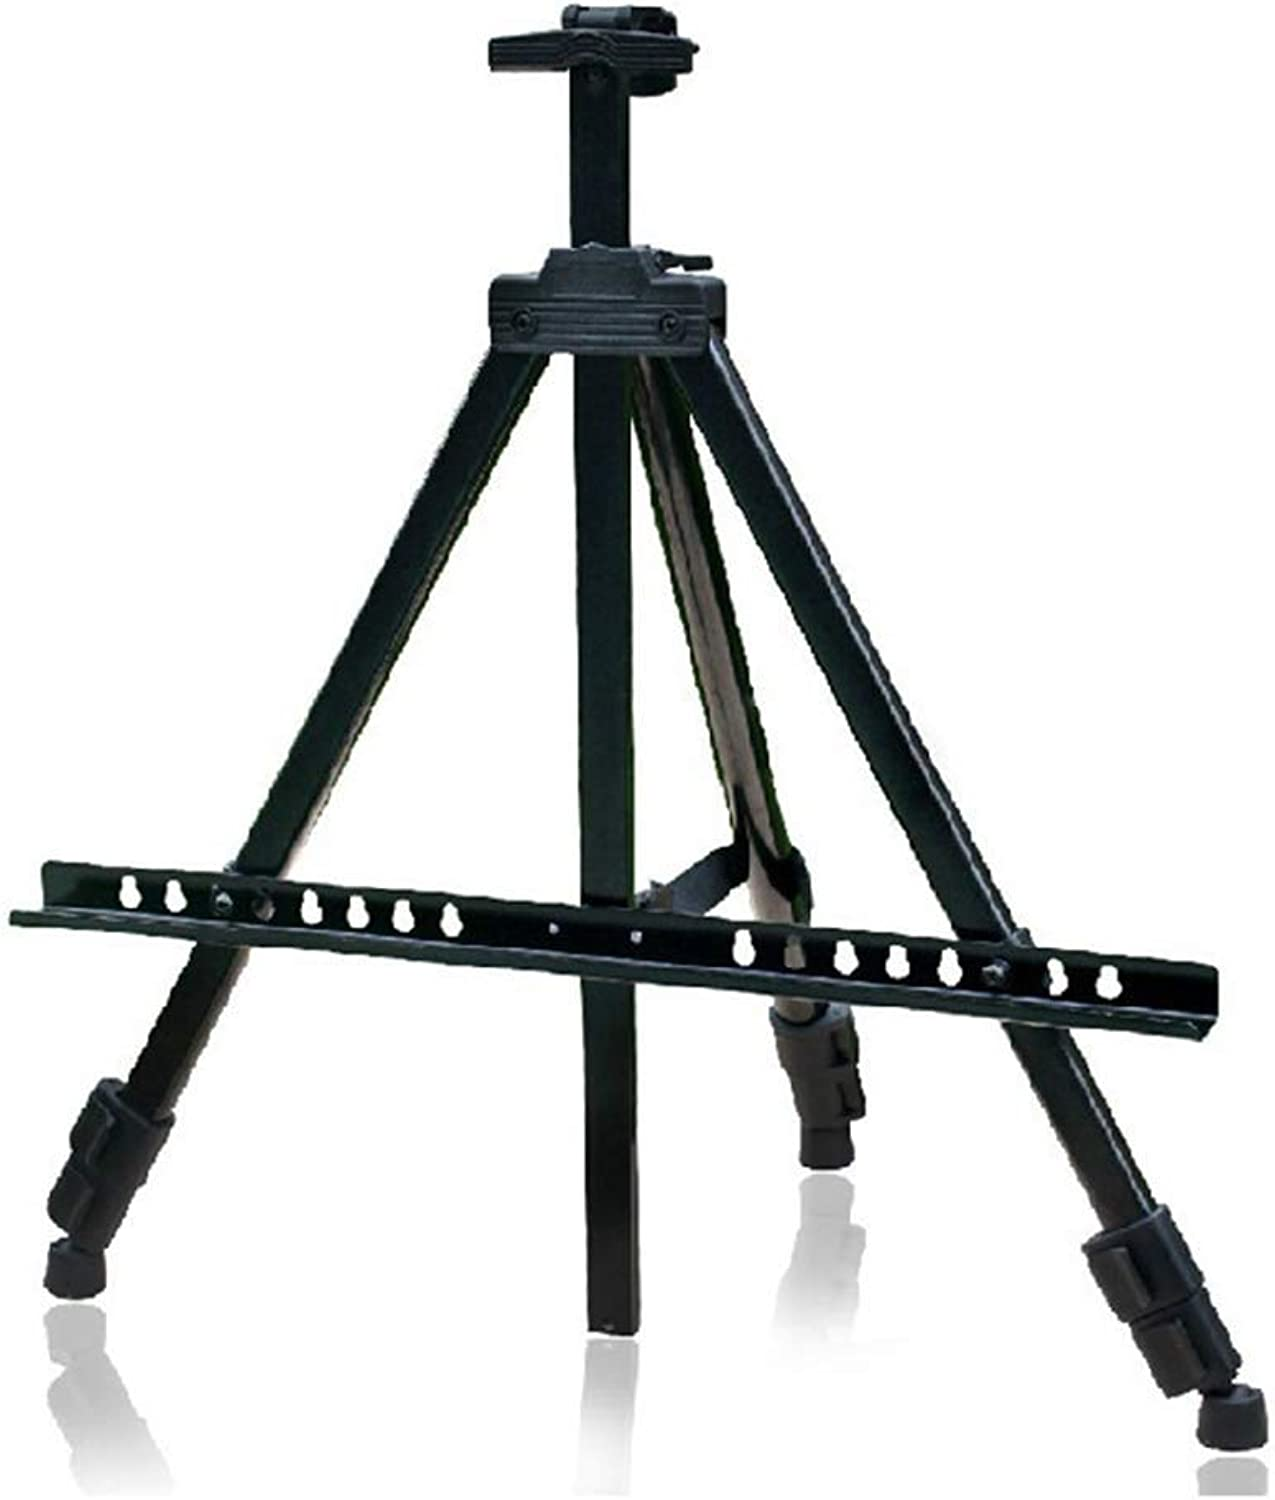 YYHSND Sketchboard Bracket, Portable Foldable Metal Easel, Tripod, Three-Legged Wrought Iron Display Stand Easel